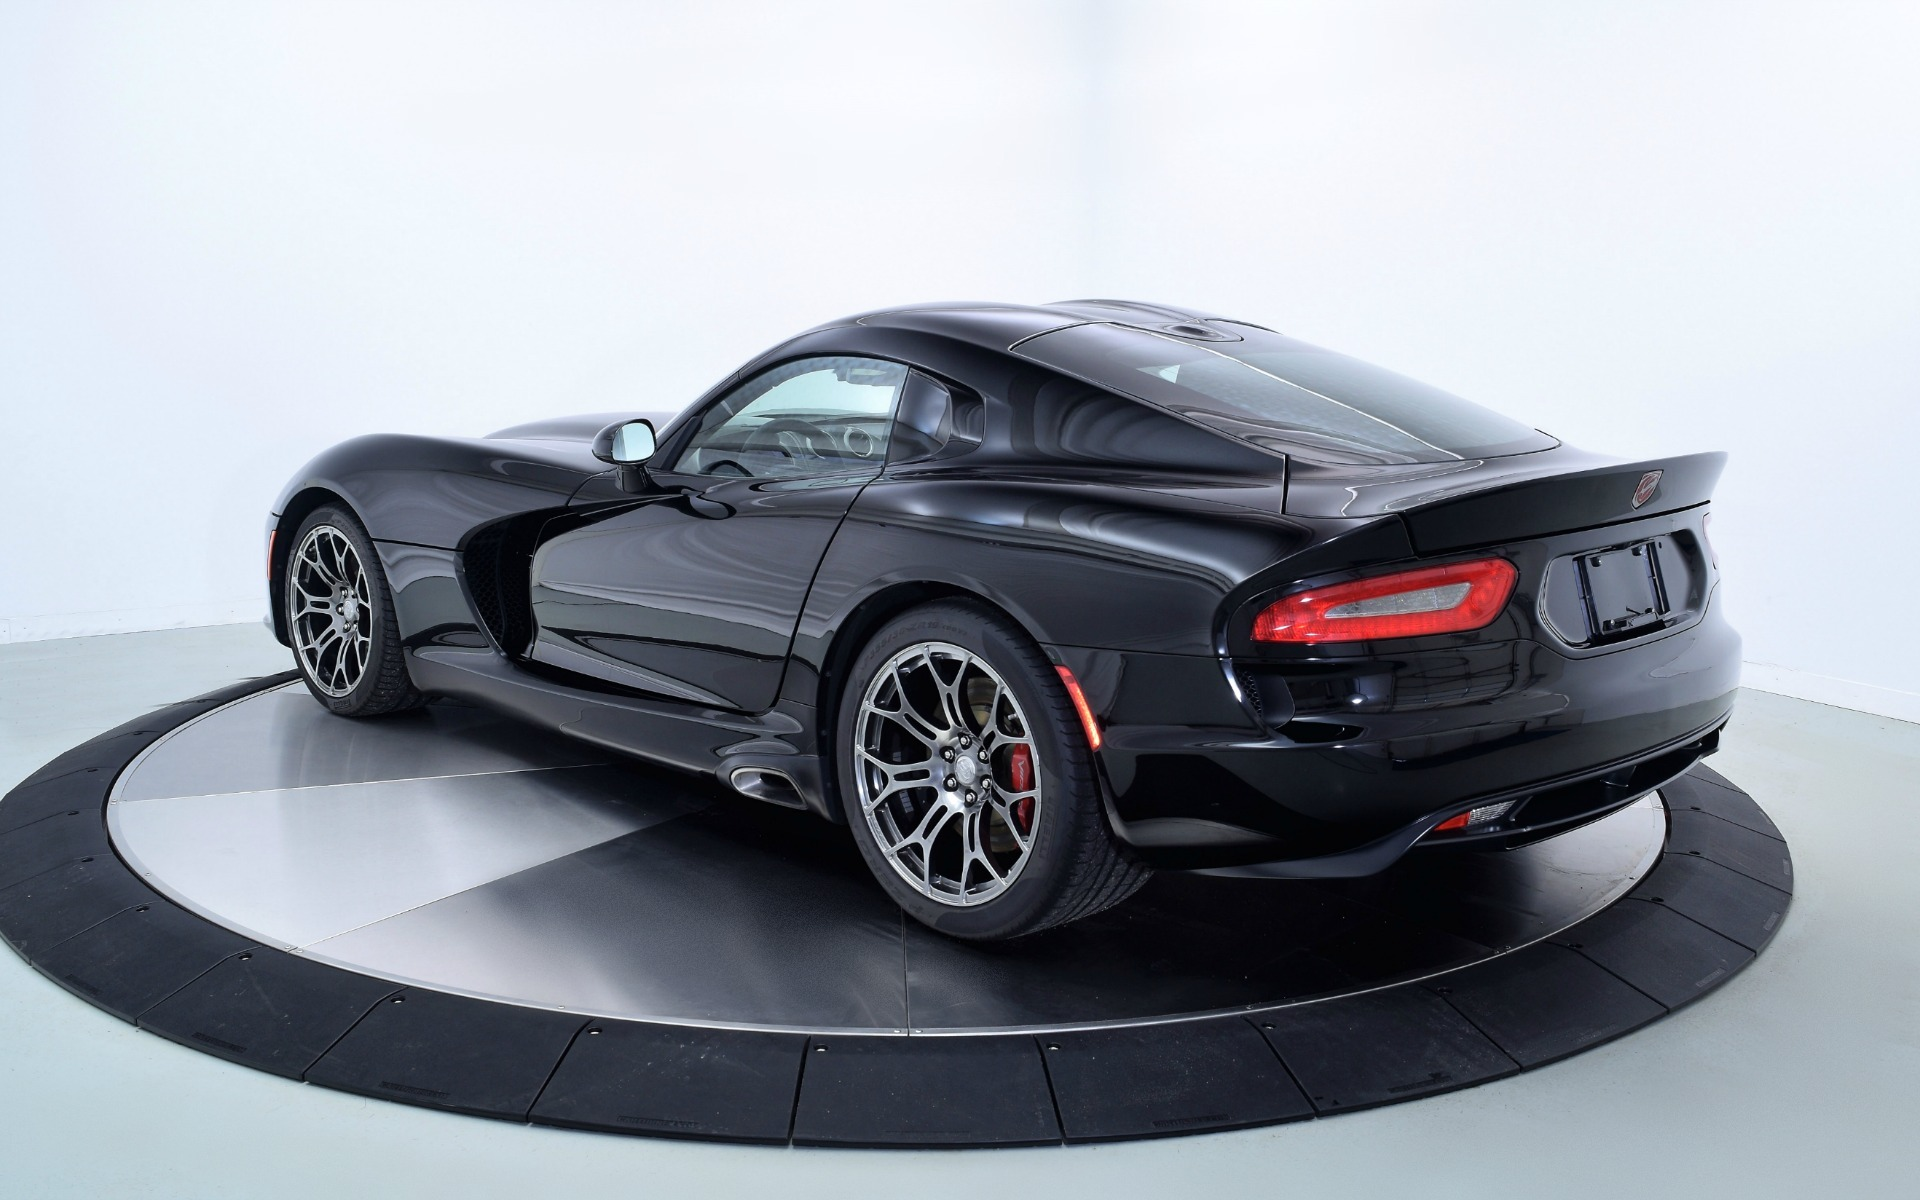 viper srt review used dodge vehicle expert of